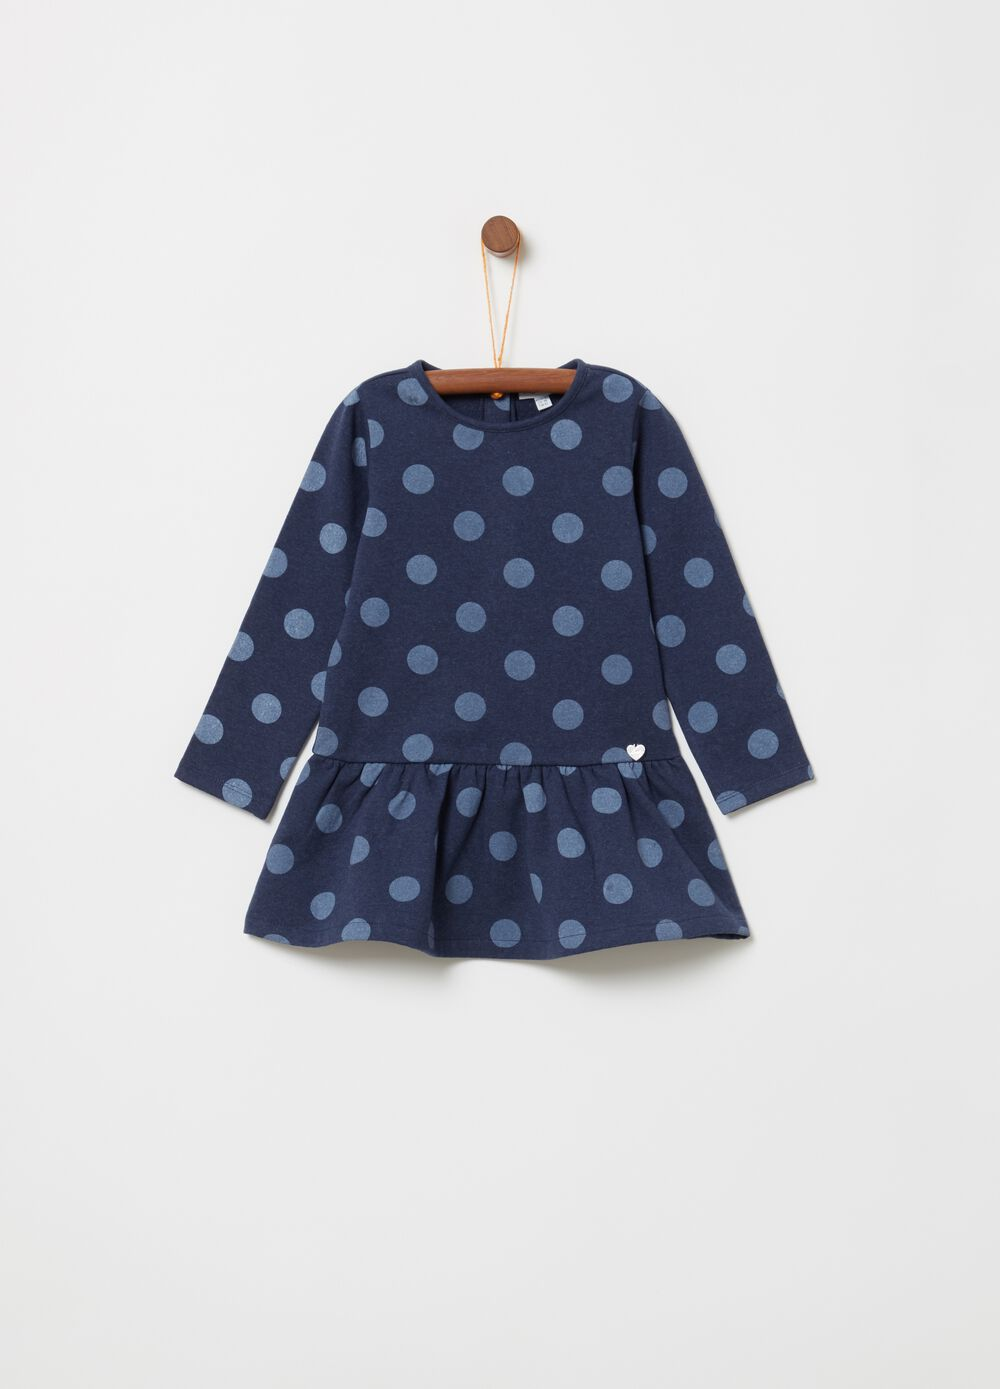 Fleece dress with long polka dot sleeves